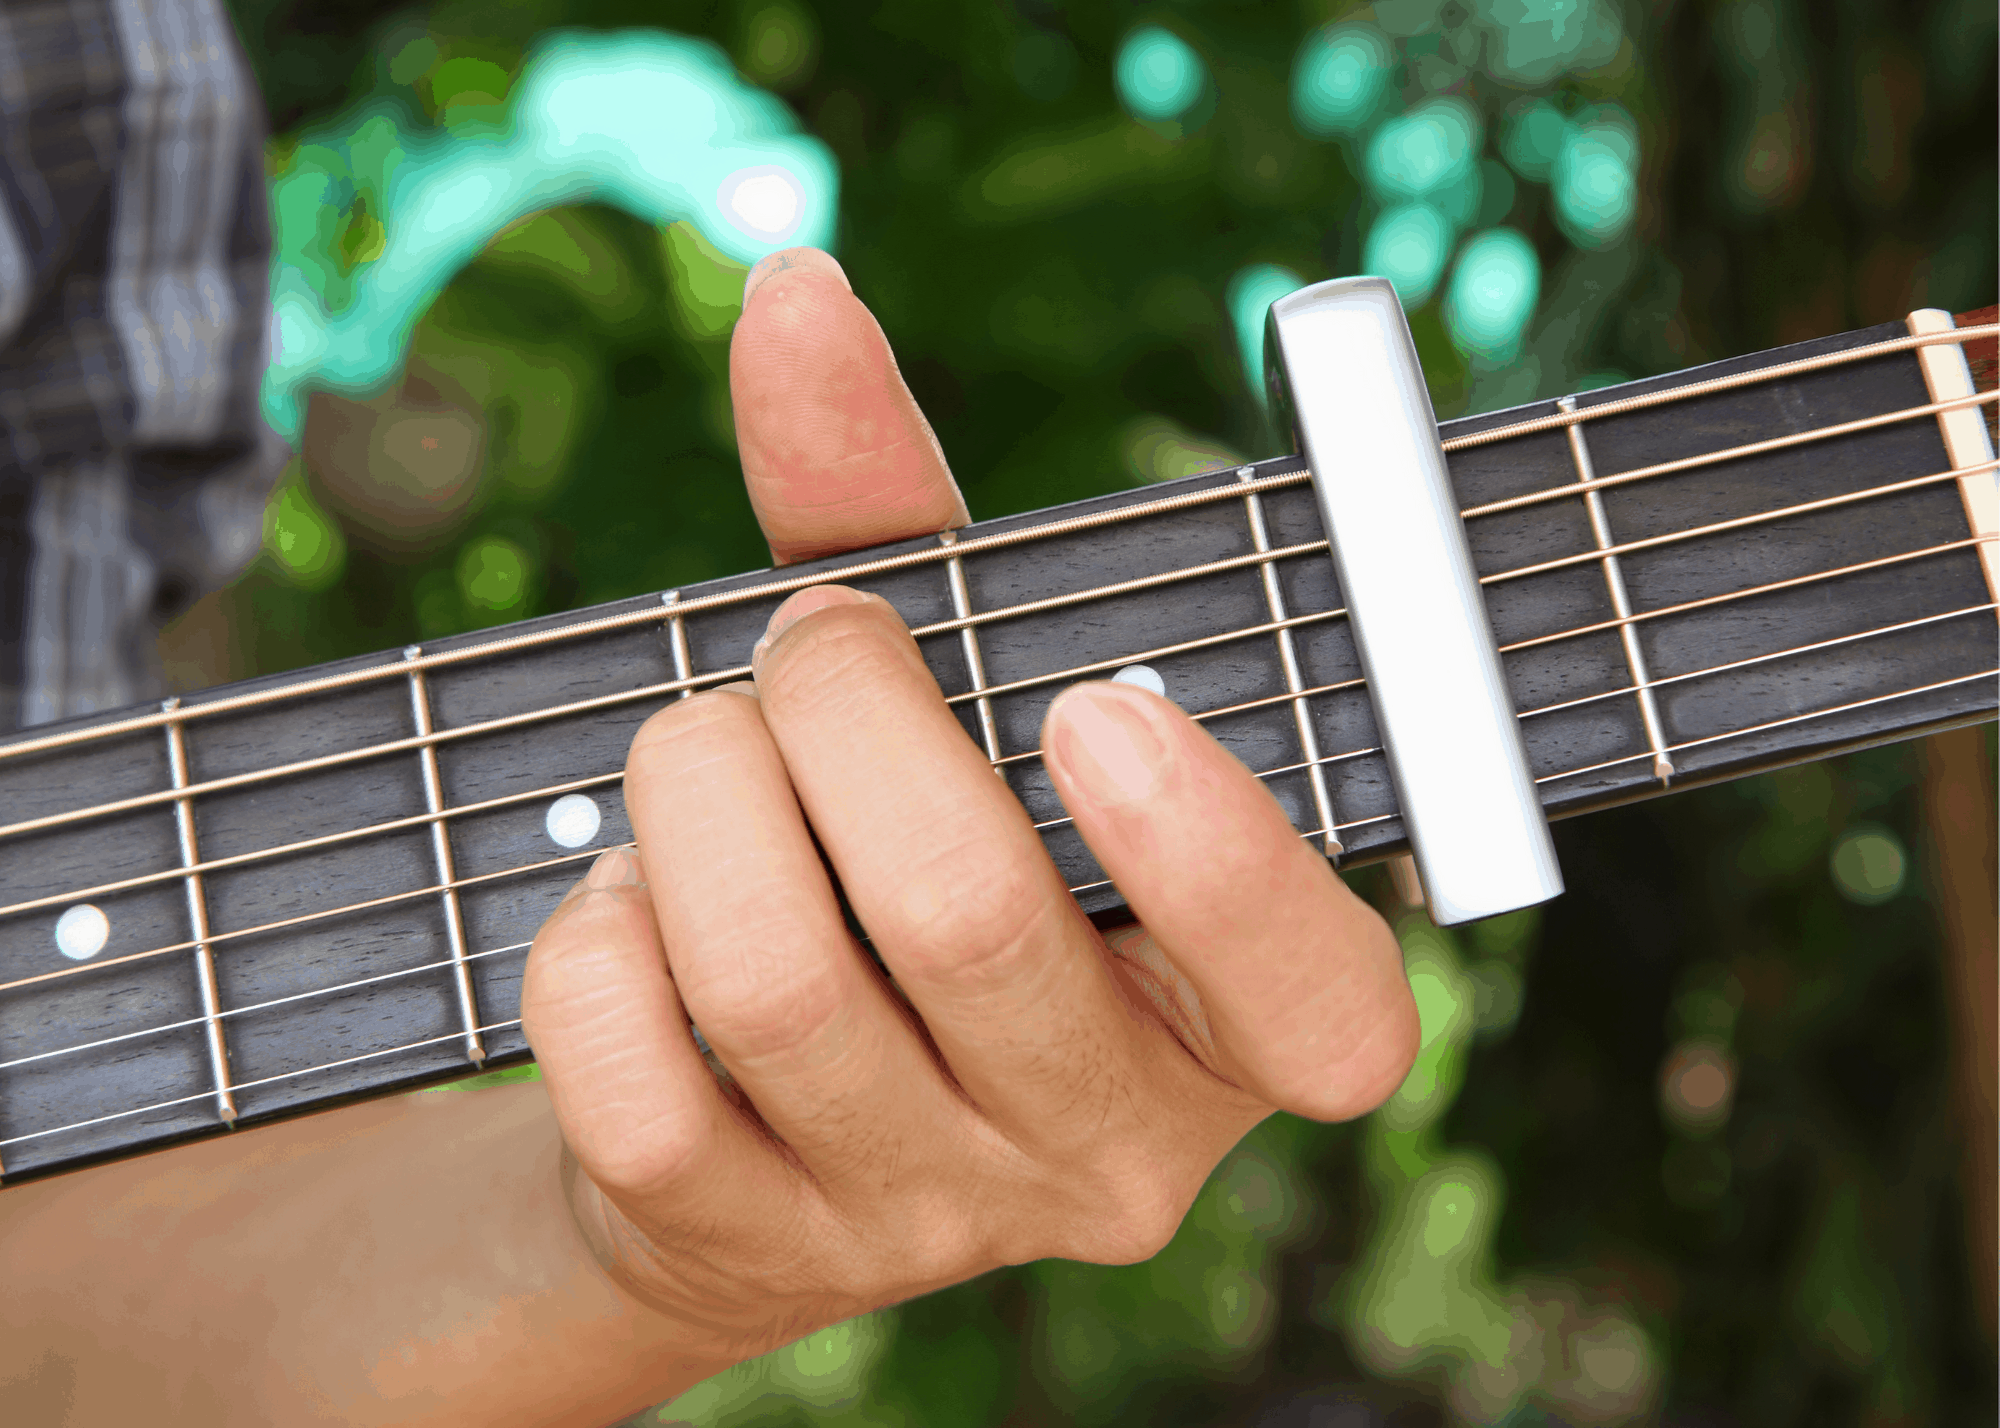 person playing a guitar using a capo